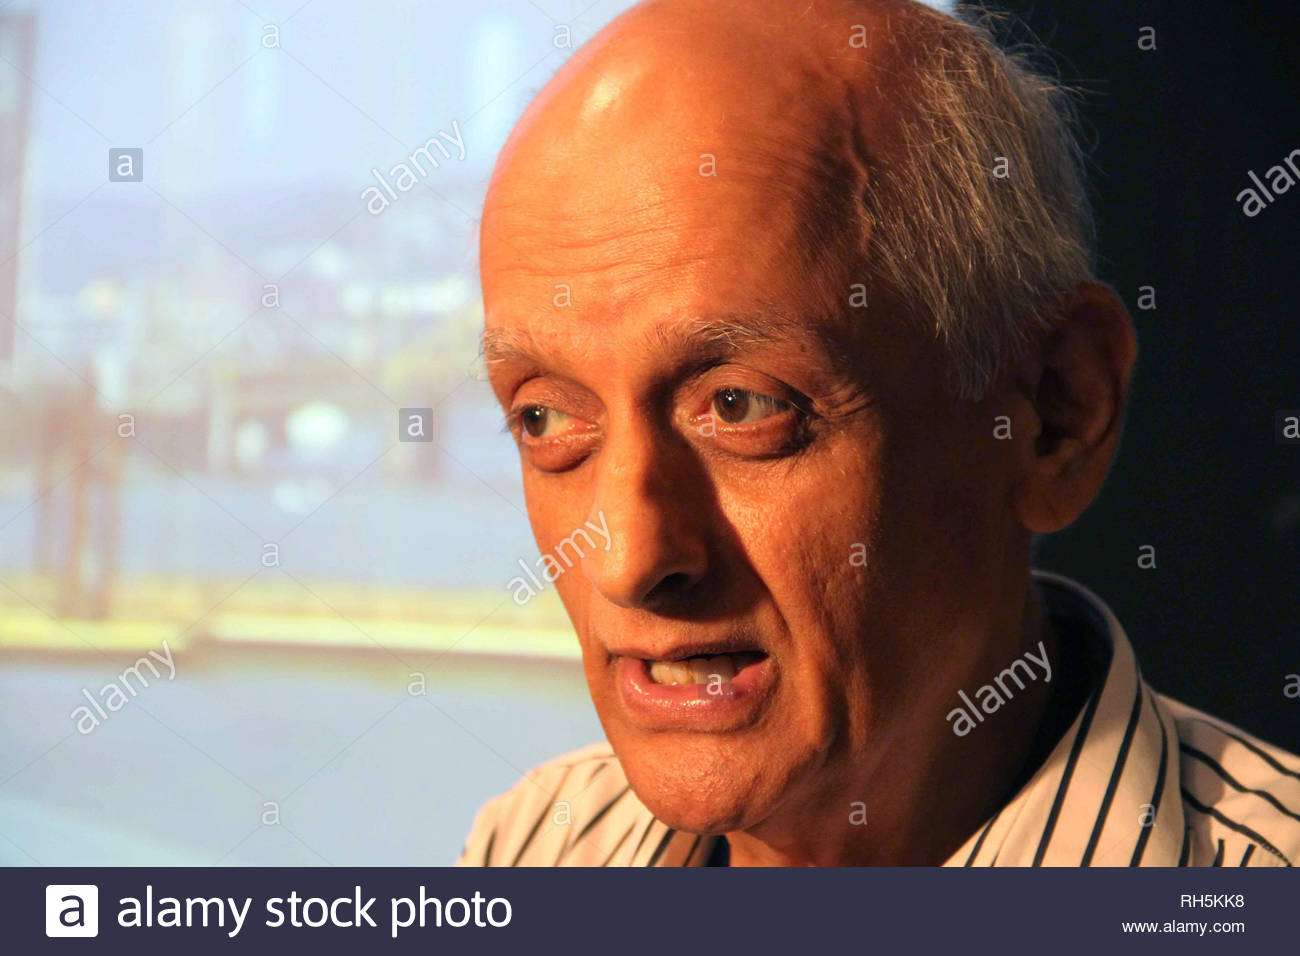 Bollywood filmmaker Mukesh Bhatt during a panel discussion on 'Building Bridges between creative communities & and priorities of our time' in Mumbai, India on July 18, 2013. (Amol Kamble) - Stock Image